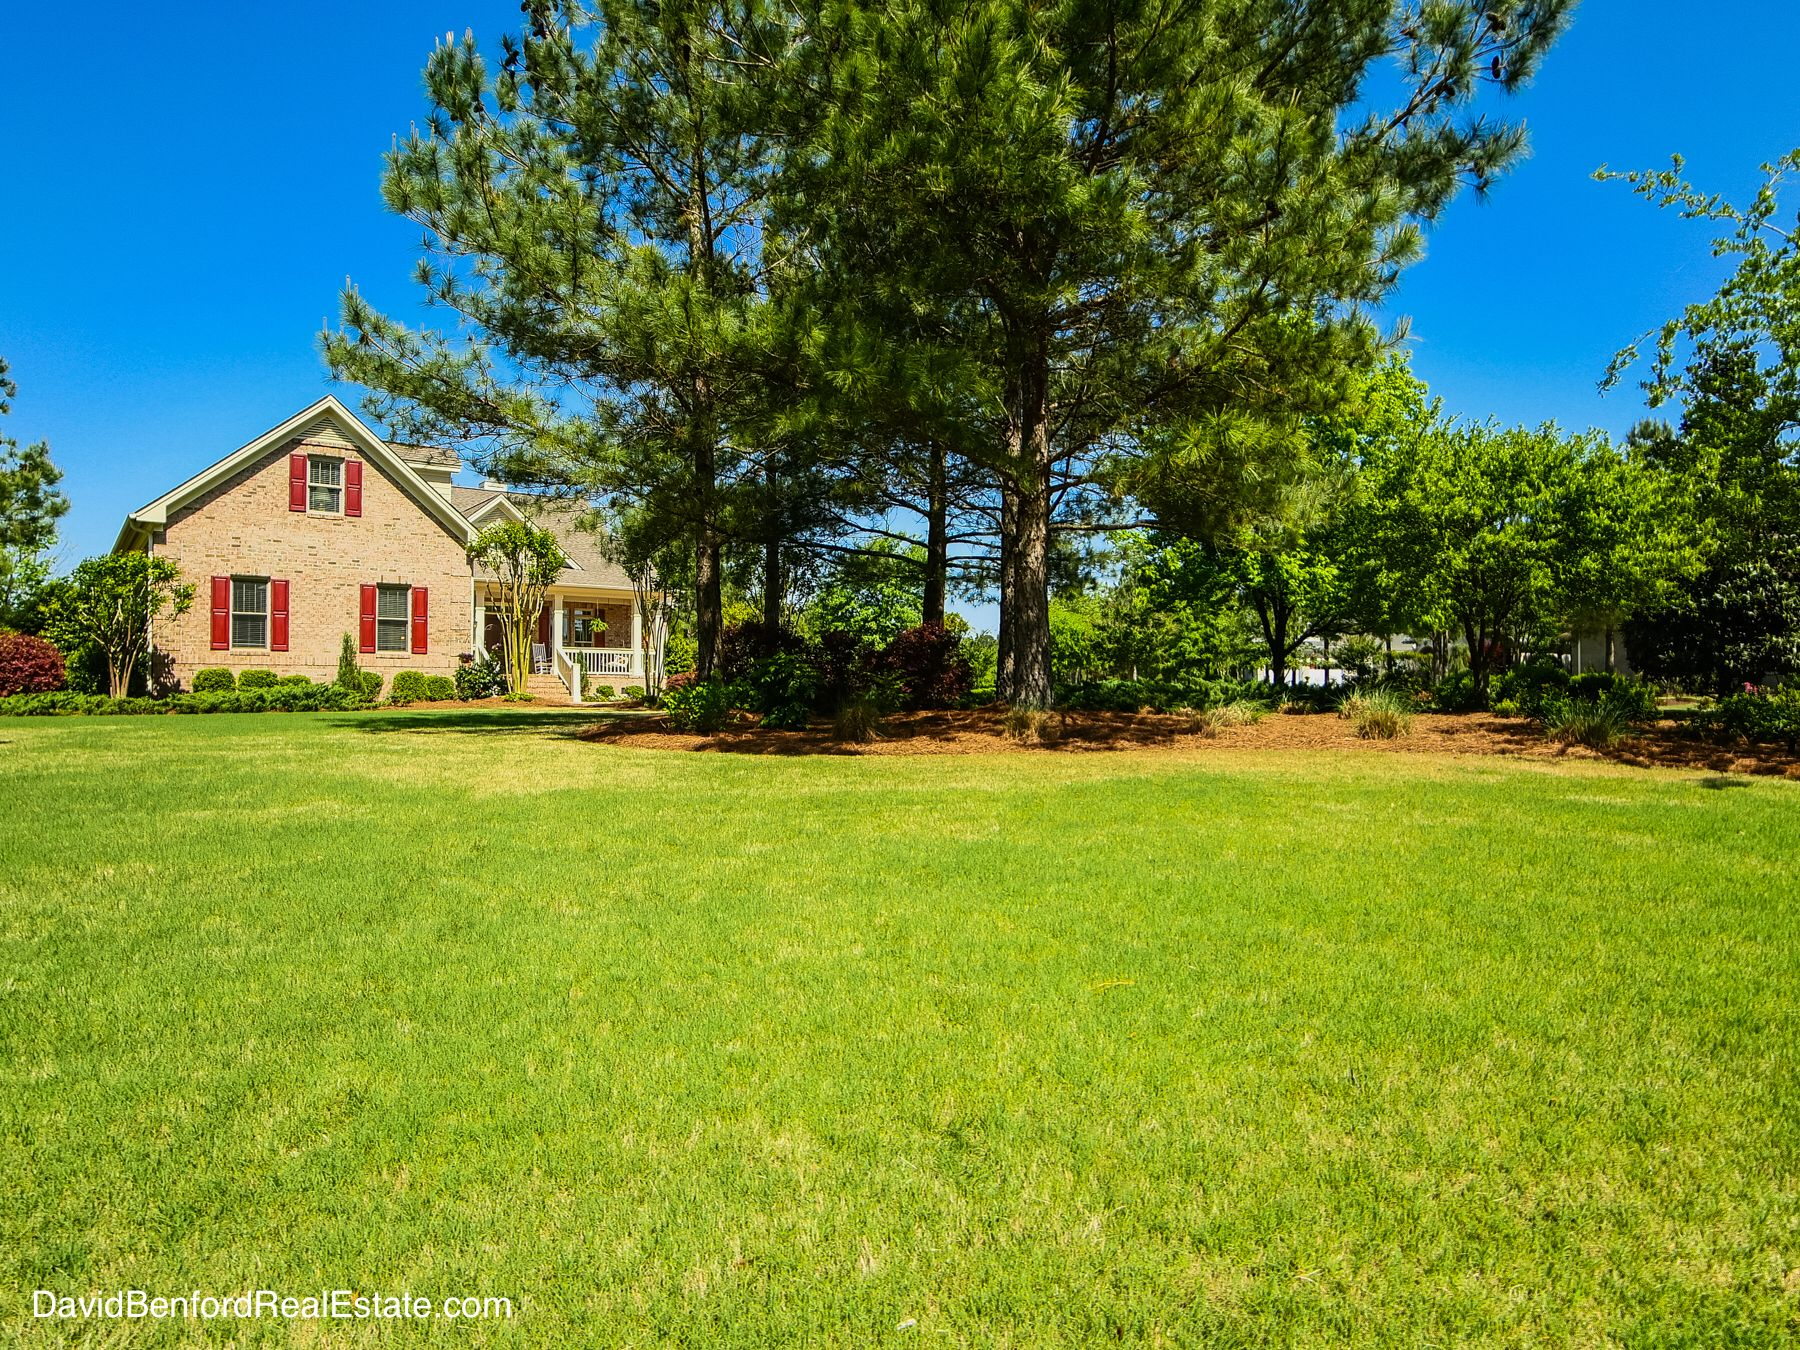 109 Legacy Lakes Drive In Wallace Nc Provides Three Bedrooms And Four Bathrooms Overlooking A Lush Golf Wilmington Real Estate Real Estate Luxury Real Estate